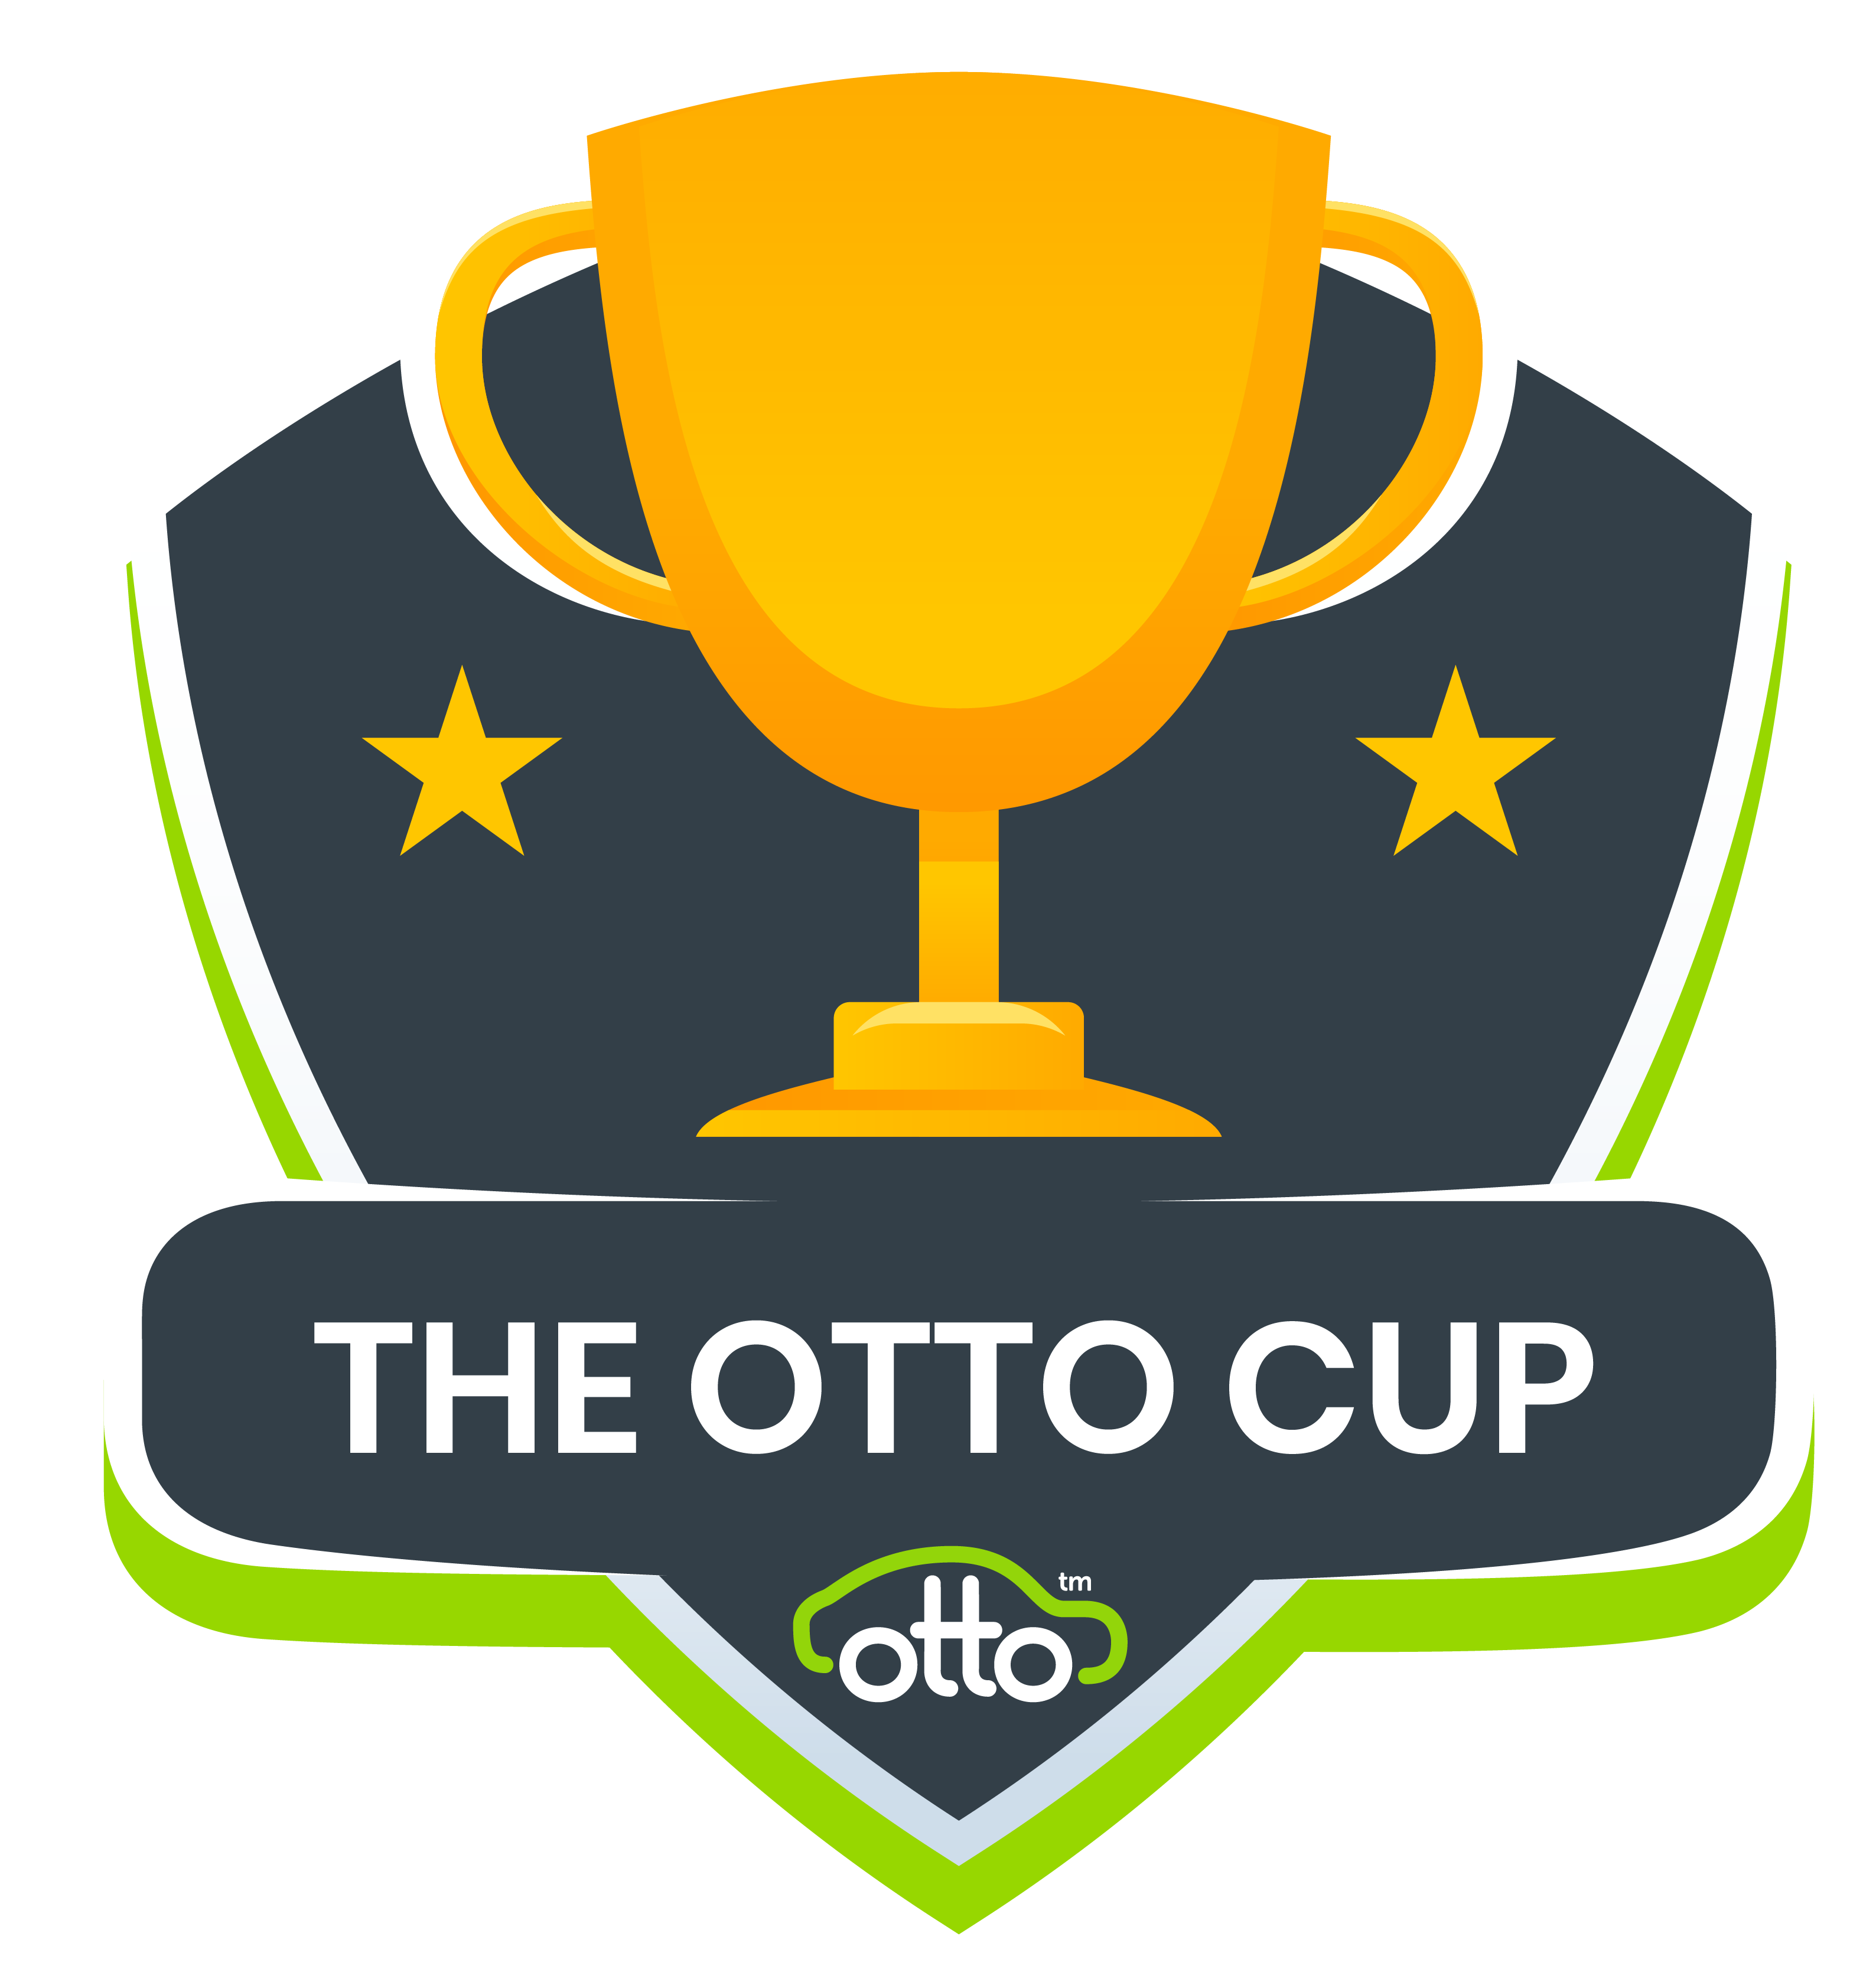 The Otto Cup - Football